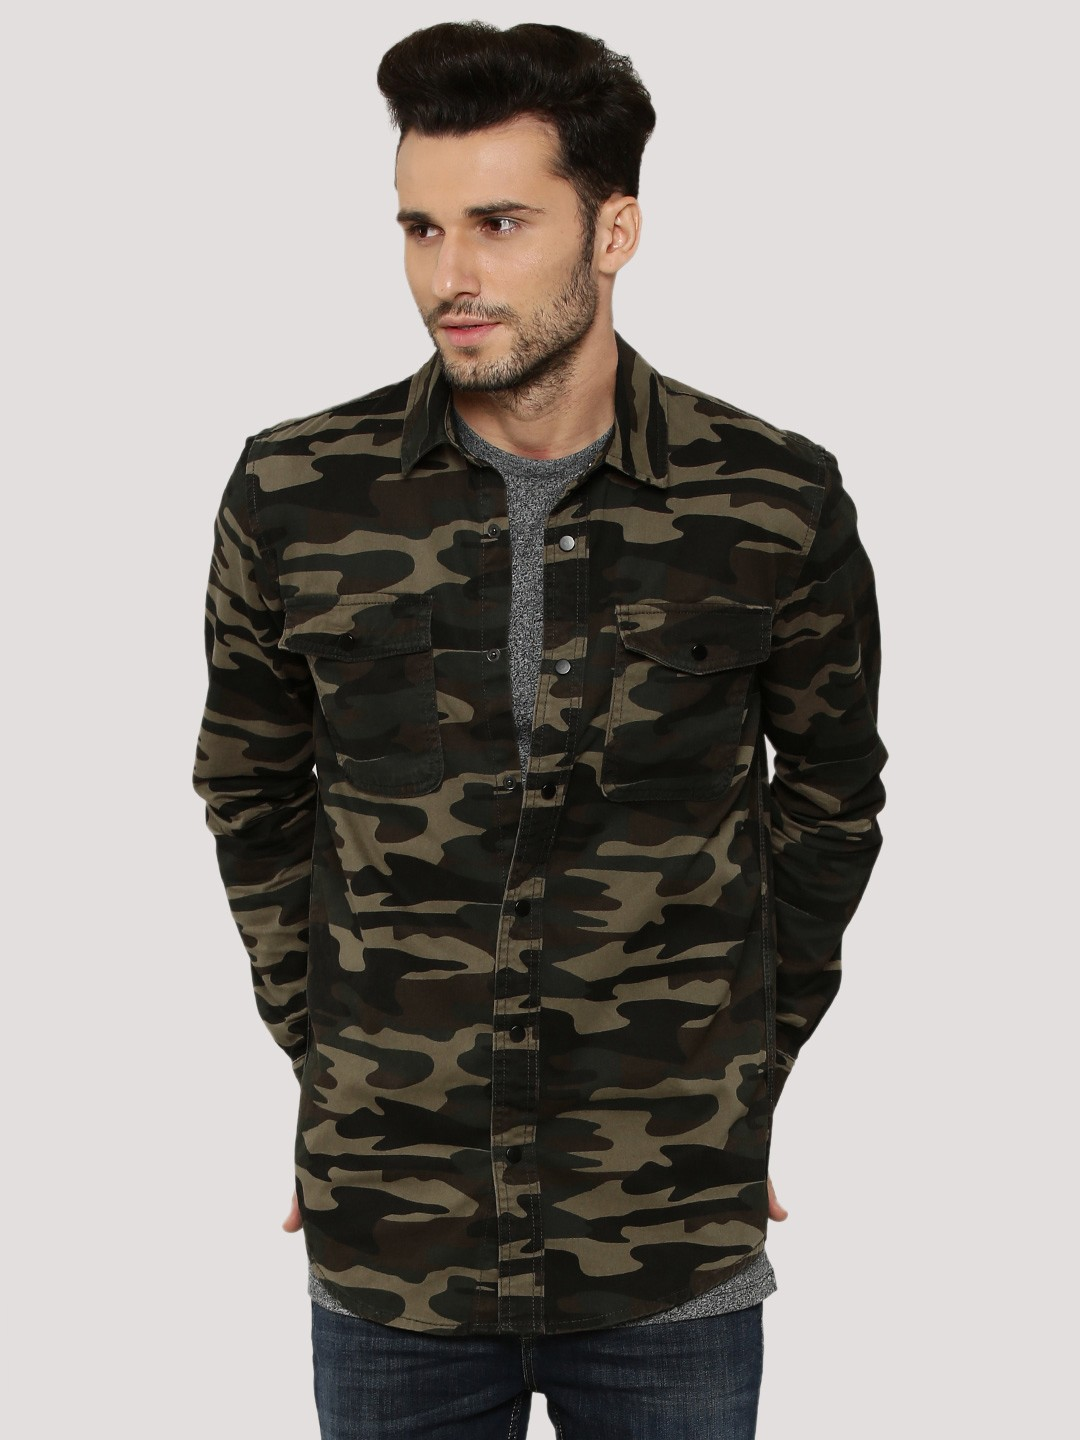 Buy New Look Camo Shacket With Twin Pockets For Men Men